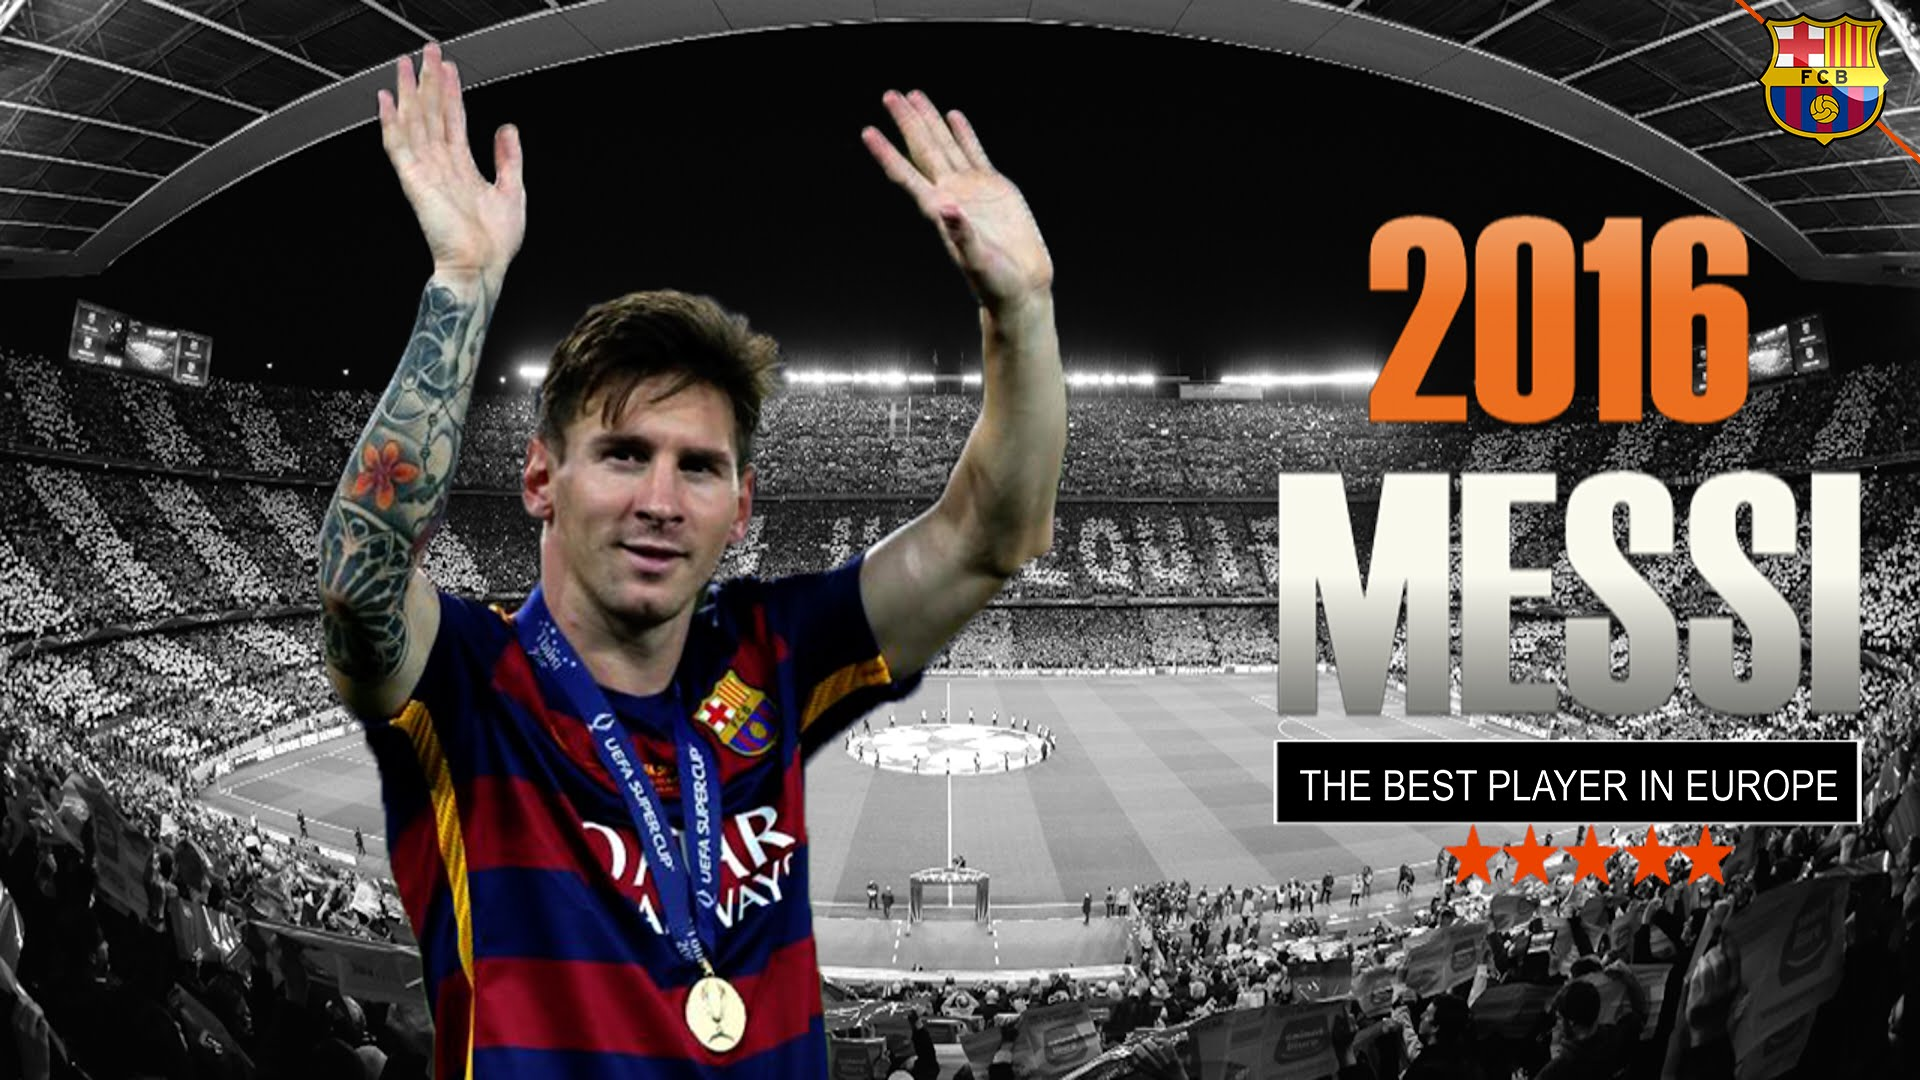 lionel messi hd wallpapers 2016 wallpapersafari